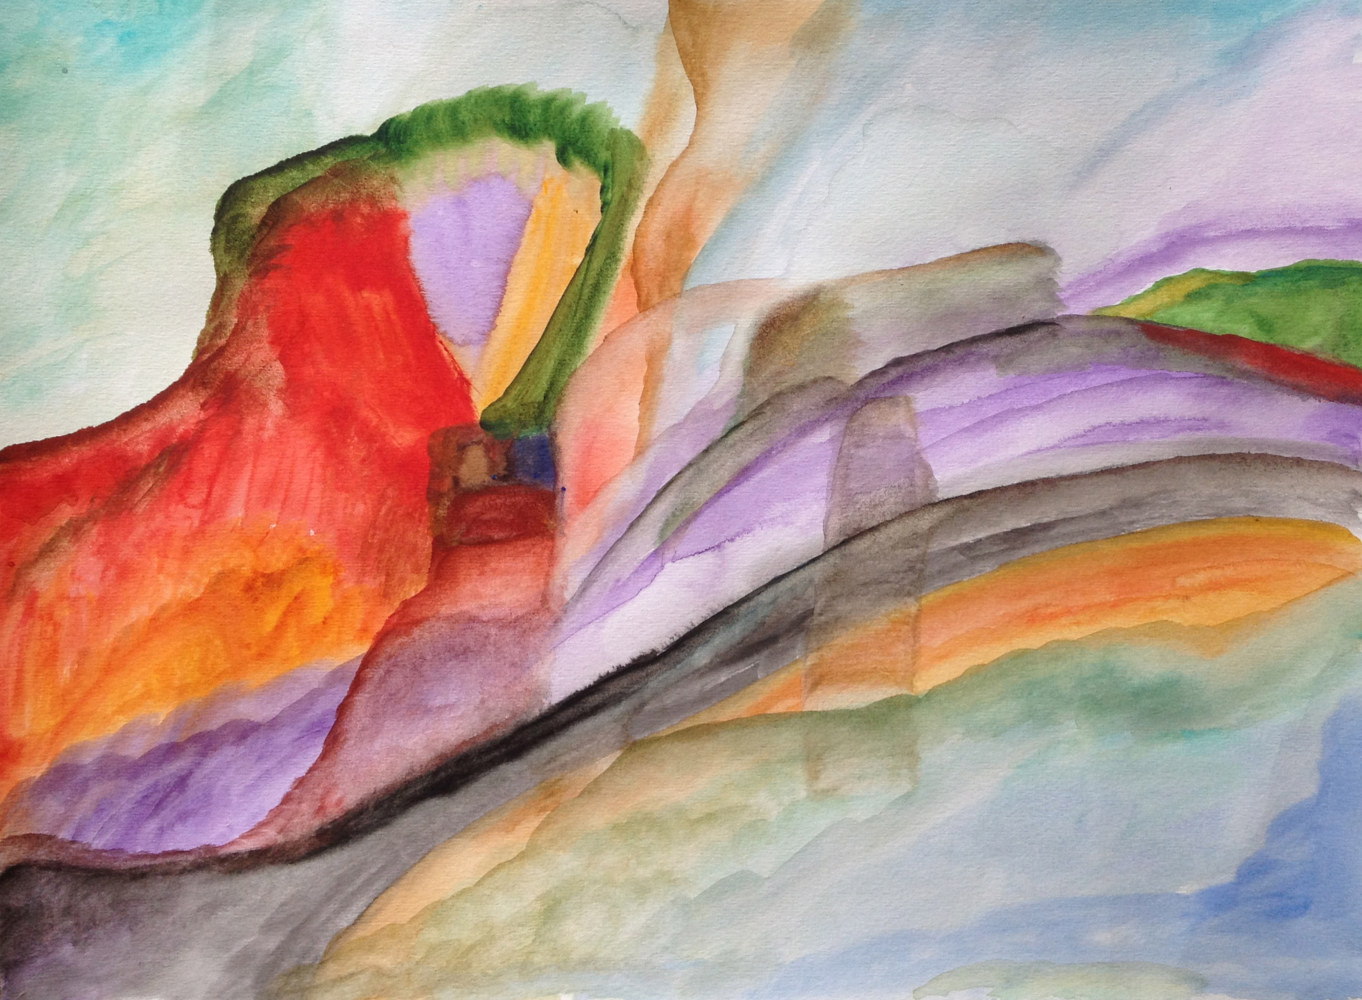 Watercolor Red Mountain | La Montagne Rouge by Nathalie Gribinski